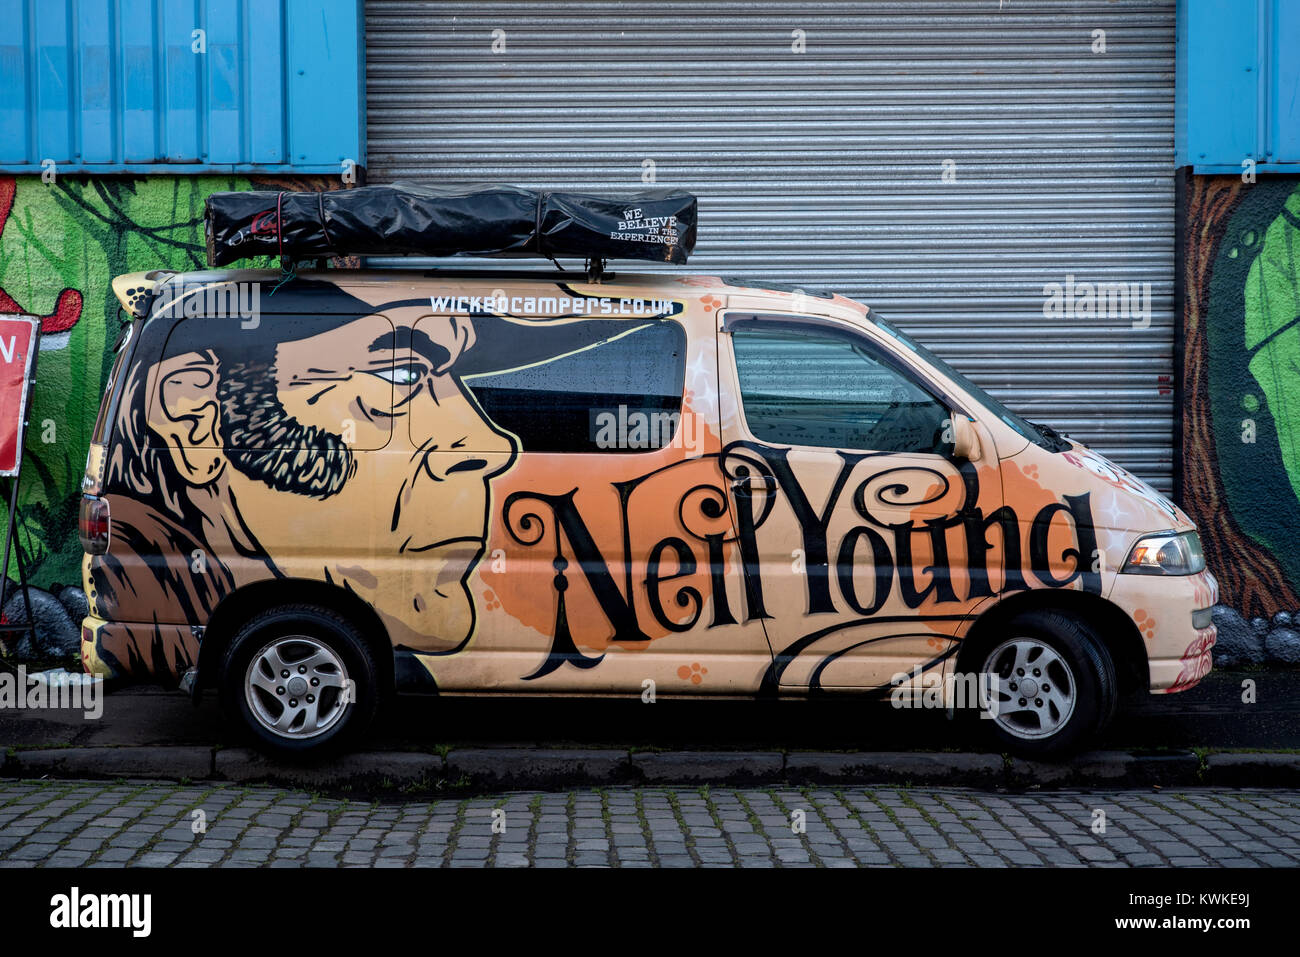 82d73f4f1c Campervan owned by the hire company Wicked Campers and decorated with the  face of singer-